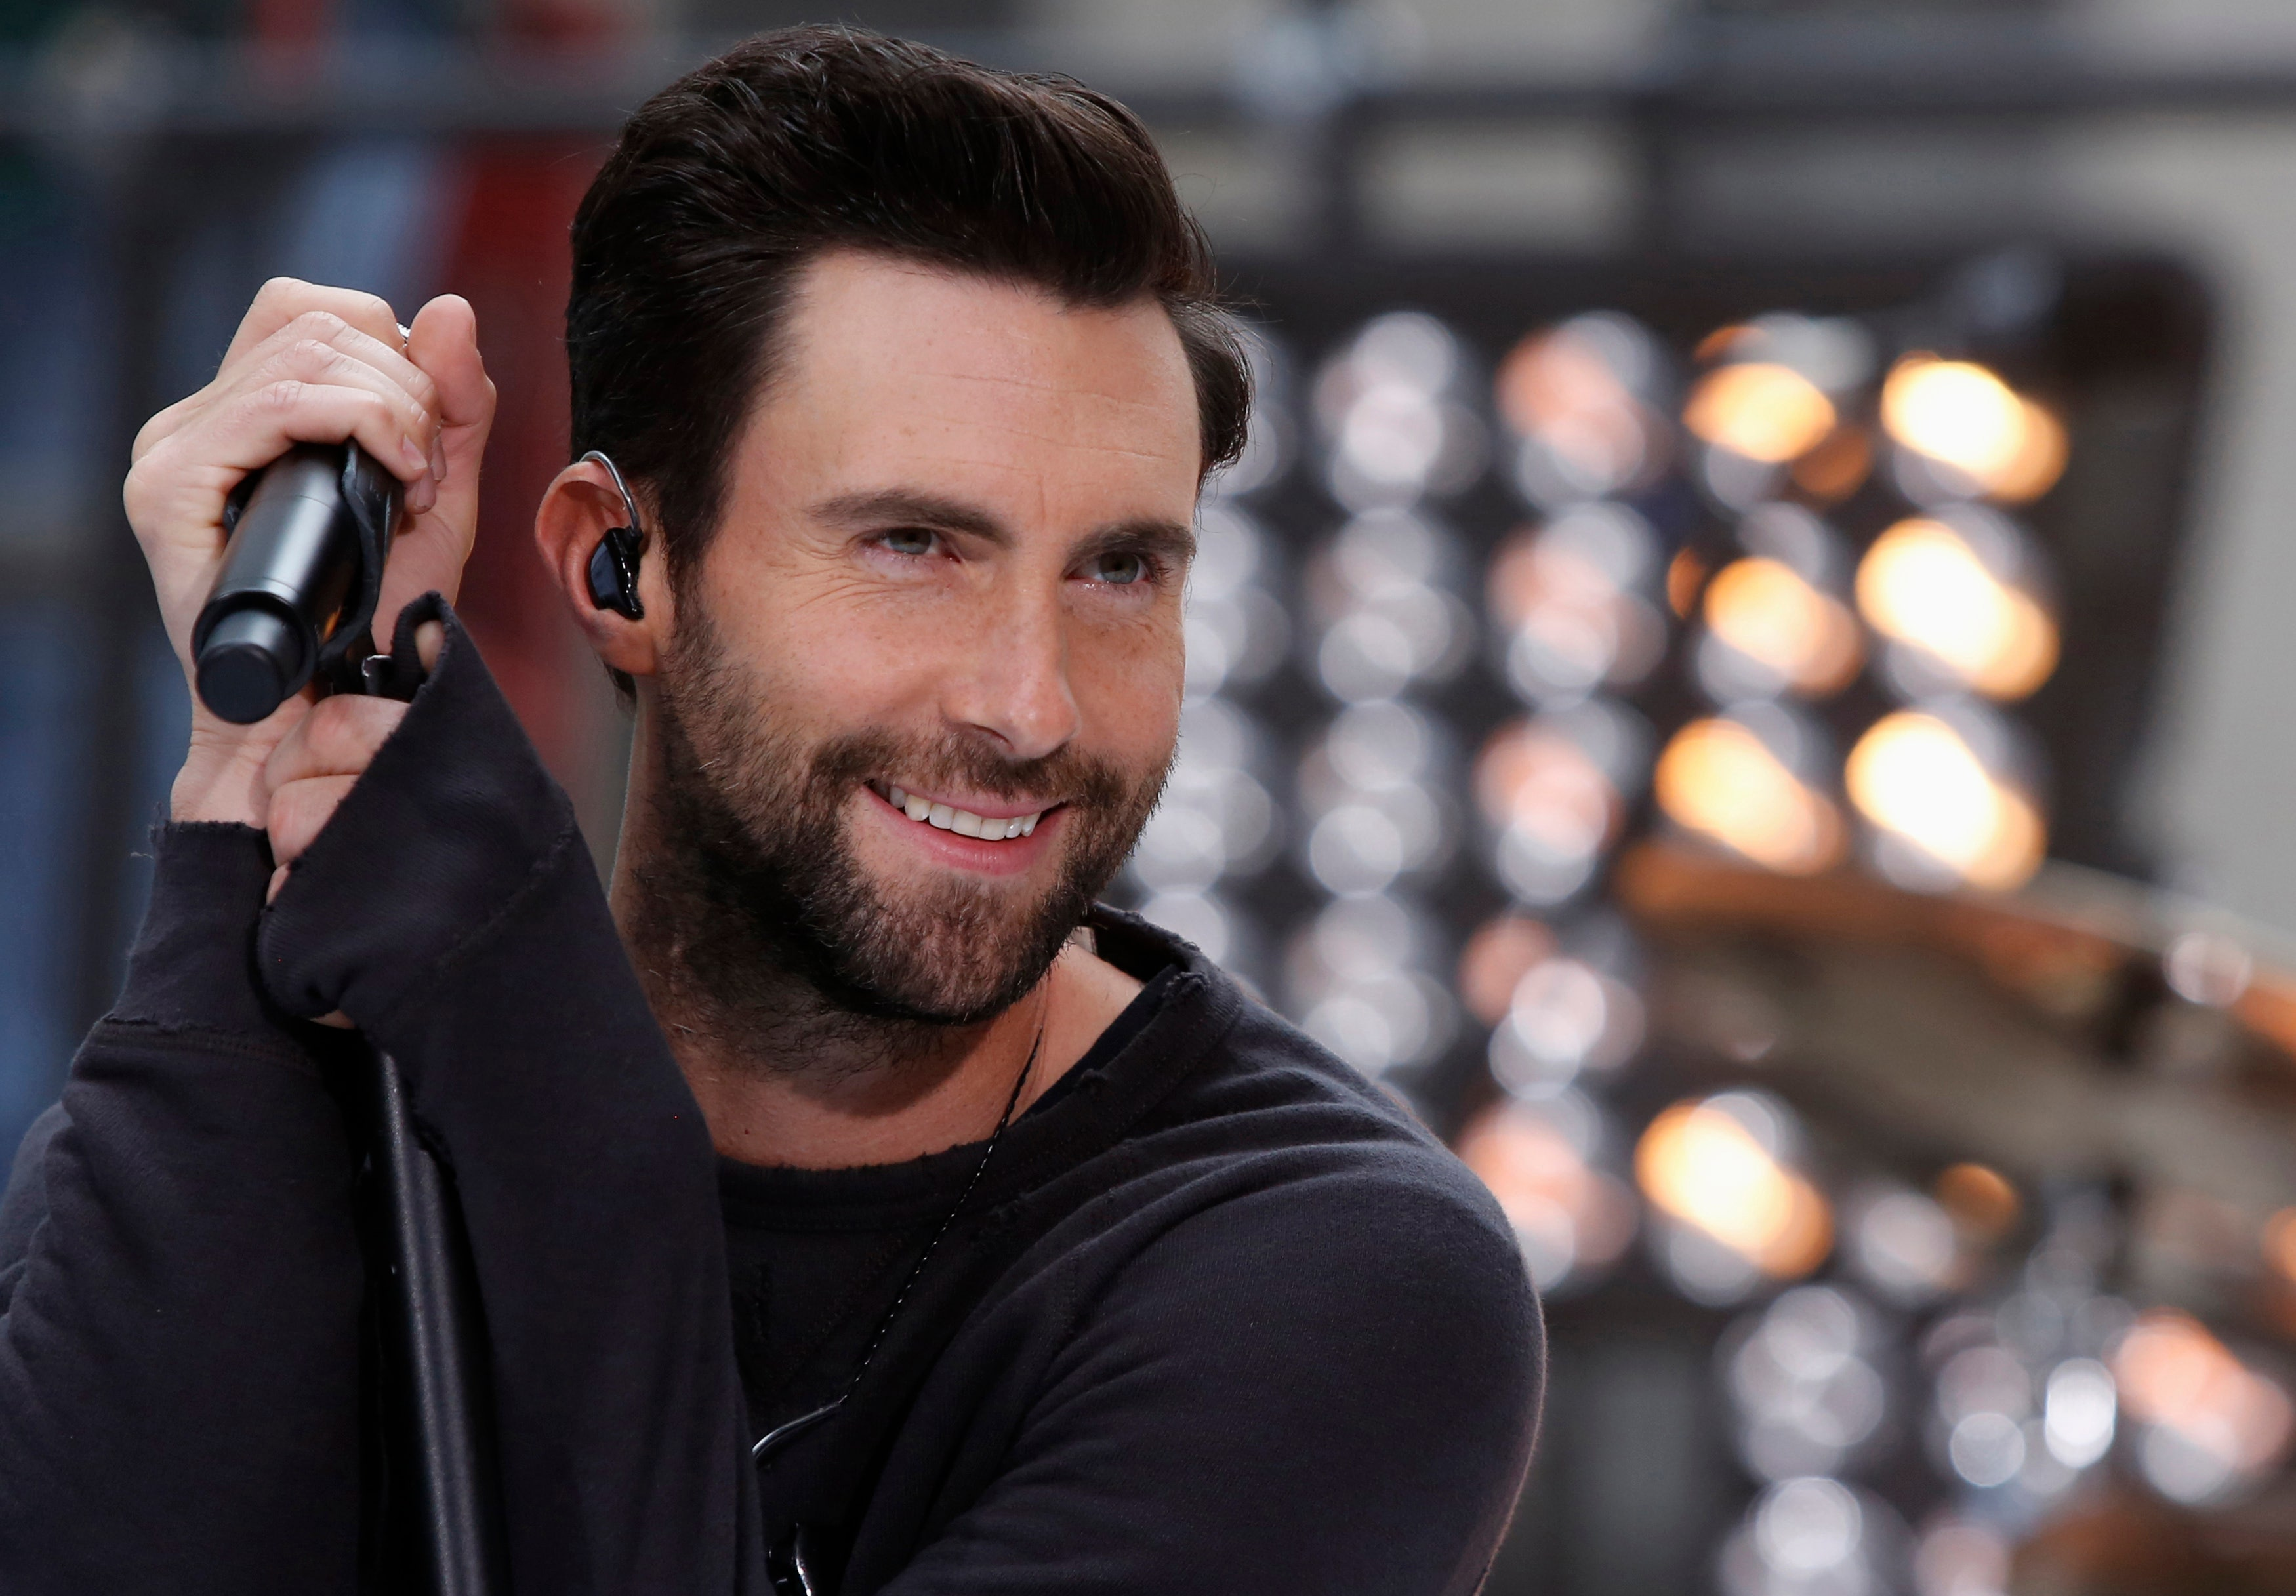 Adam Levine Throws Microphone Accidentally Hits Fan In